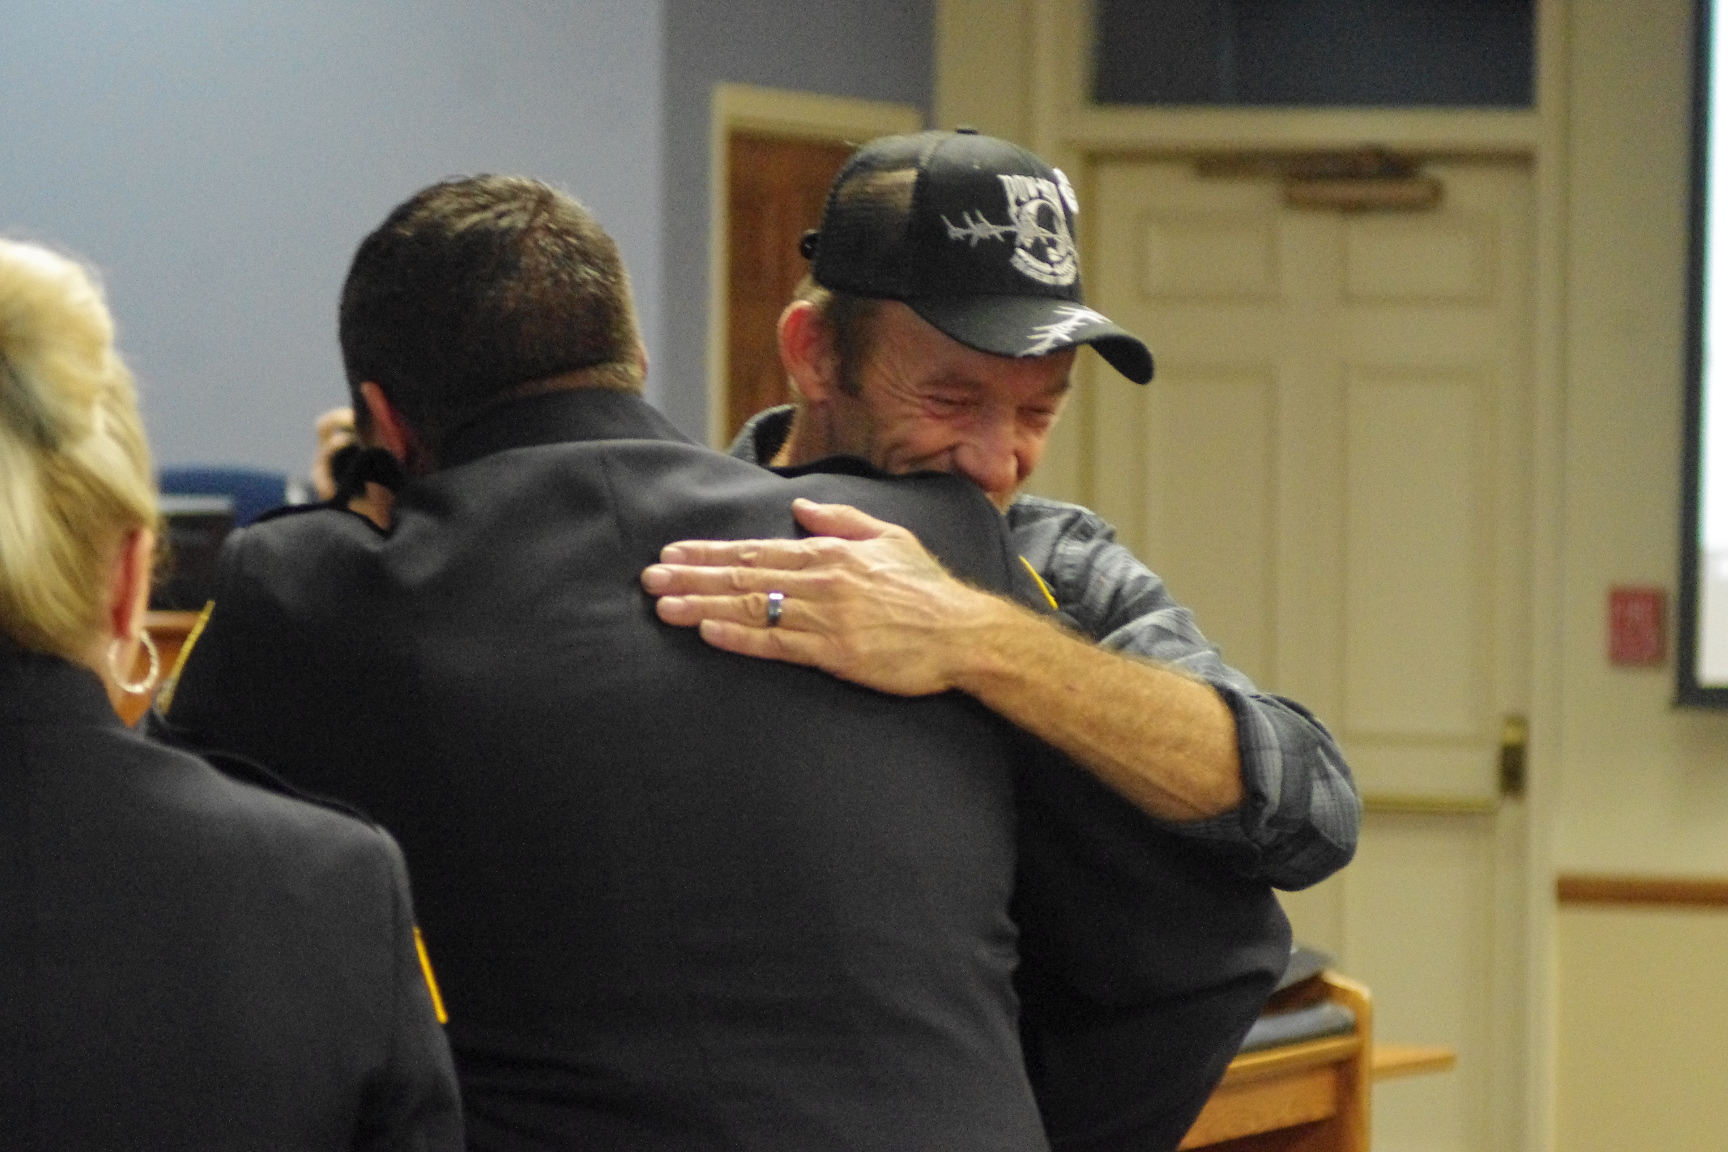 Man rescued by Spring Hill Fire Department thanks rescuer during city meeting